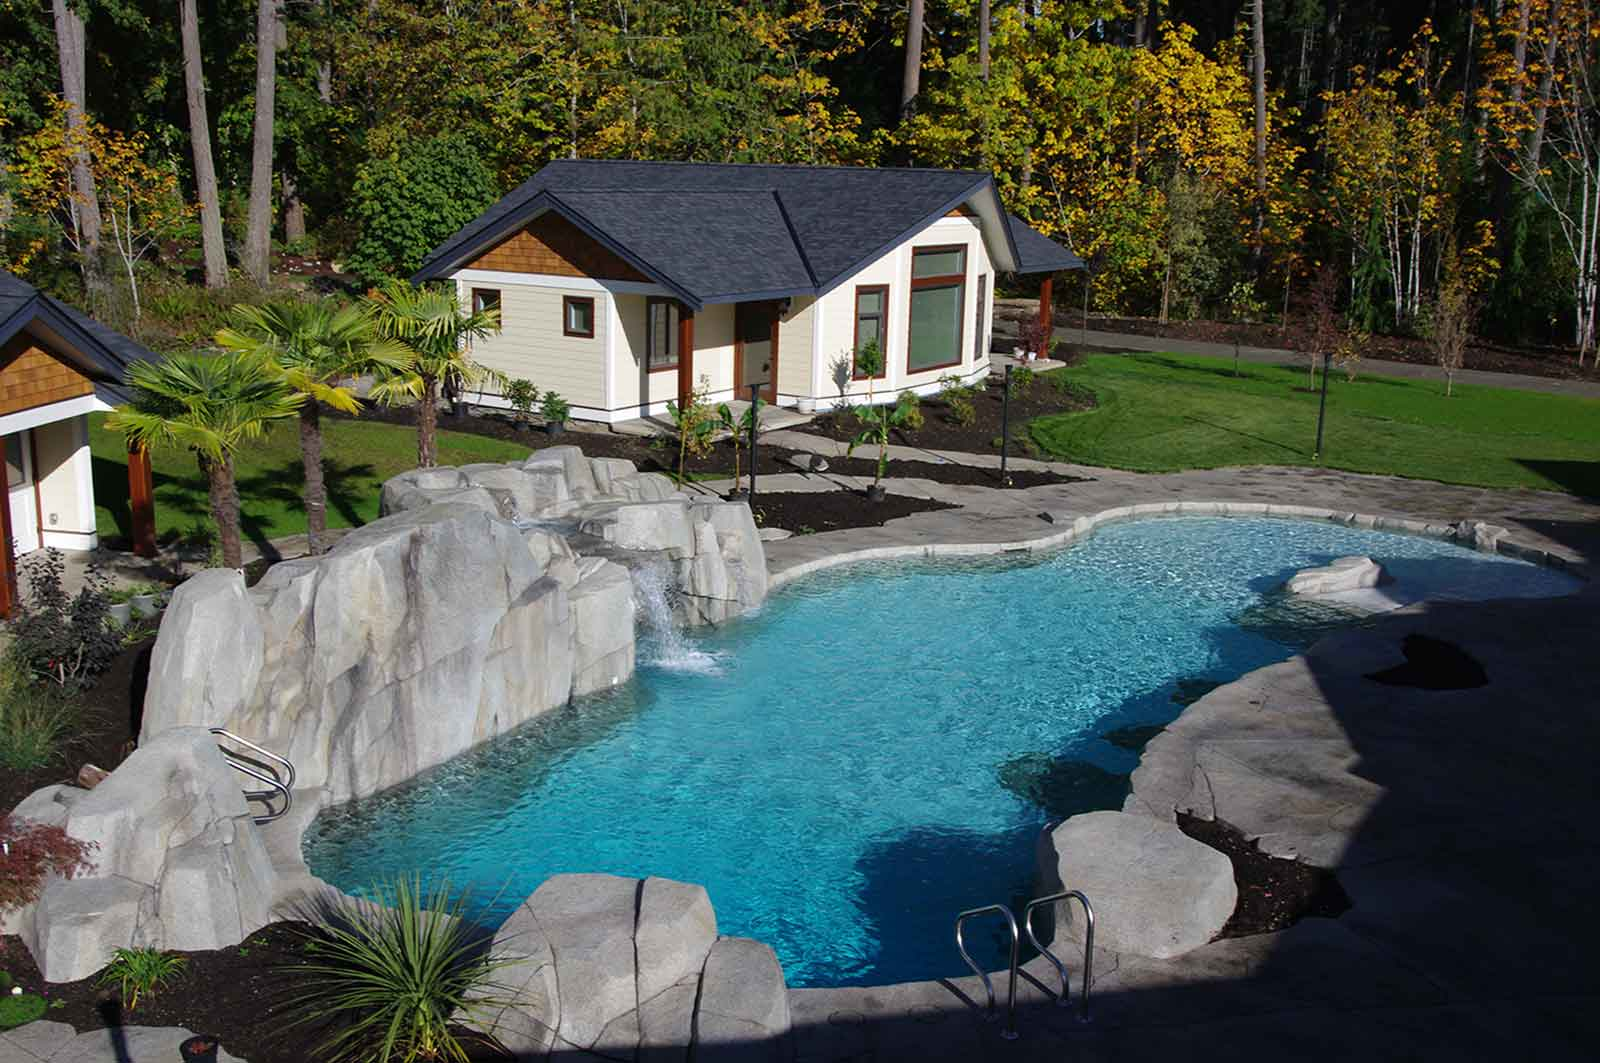 Large custom designed in-ground swimming pool with artificial rock wall